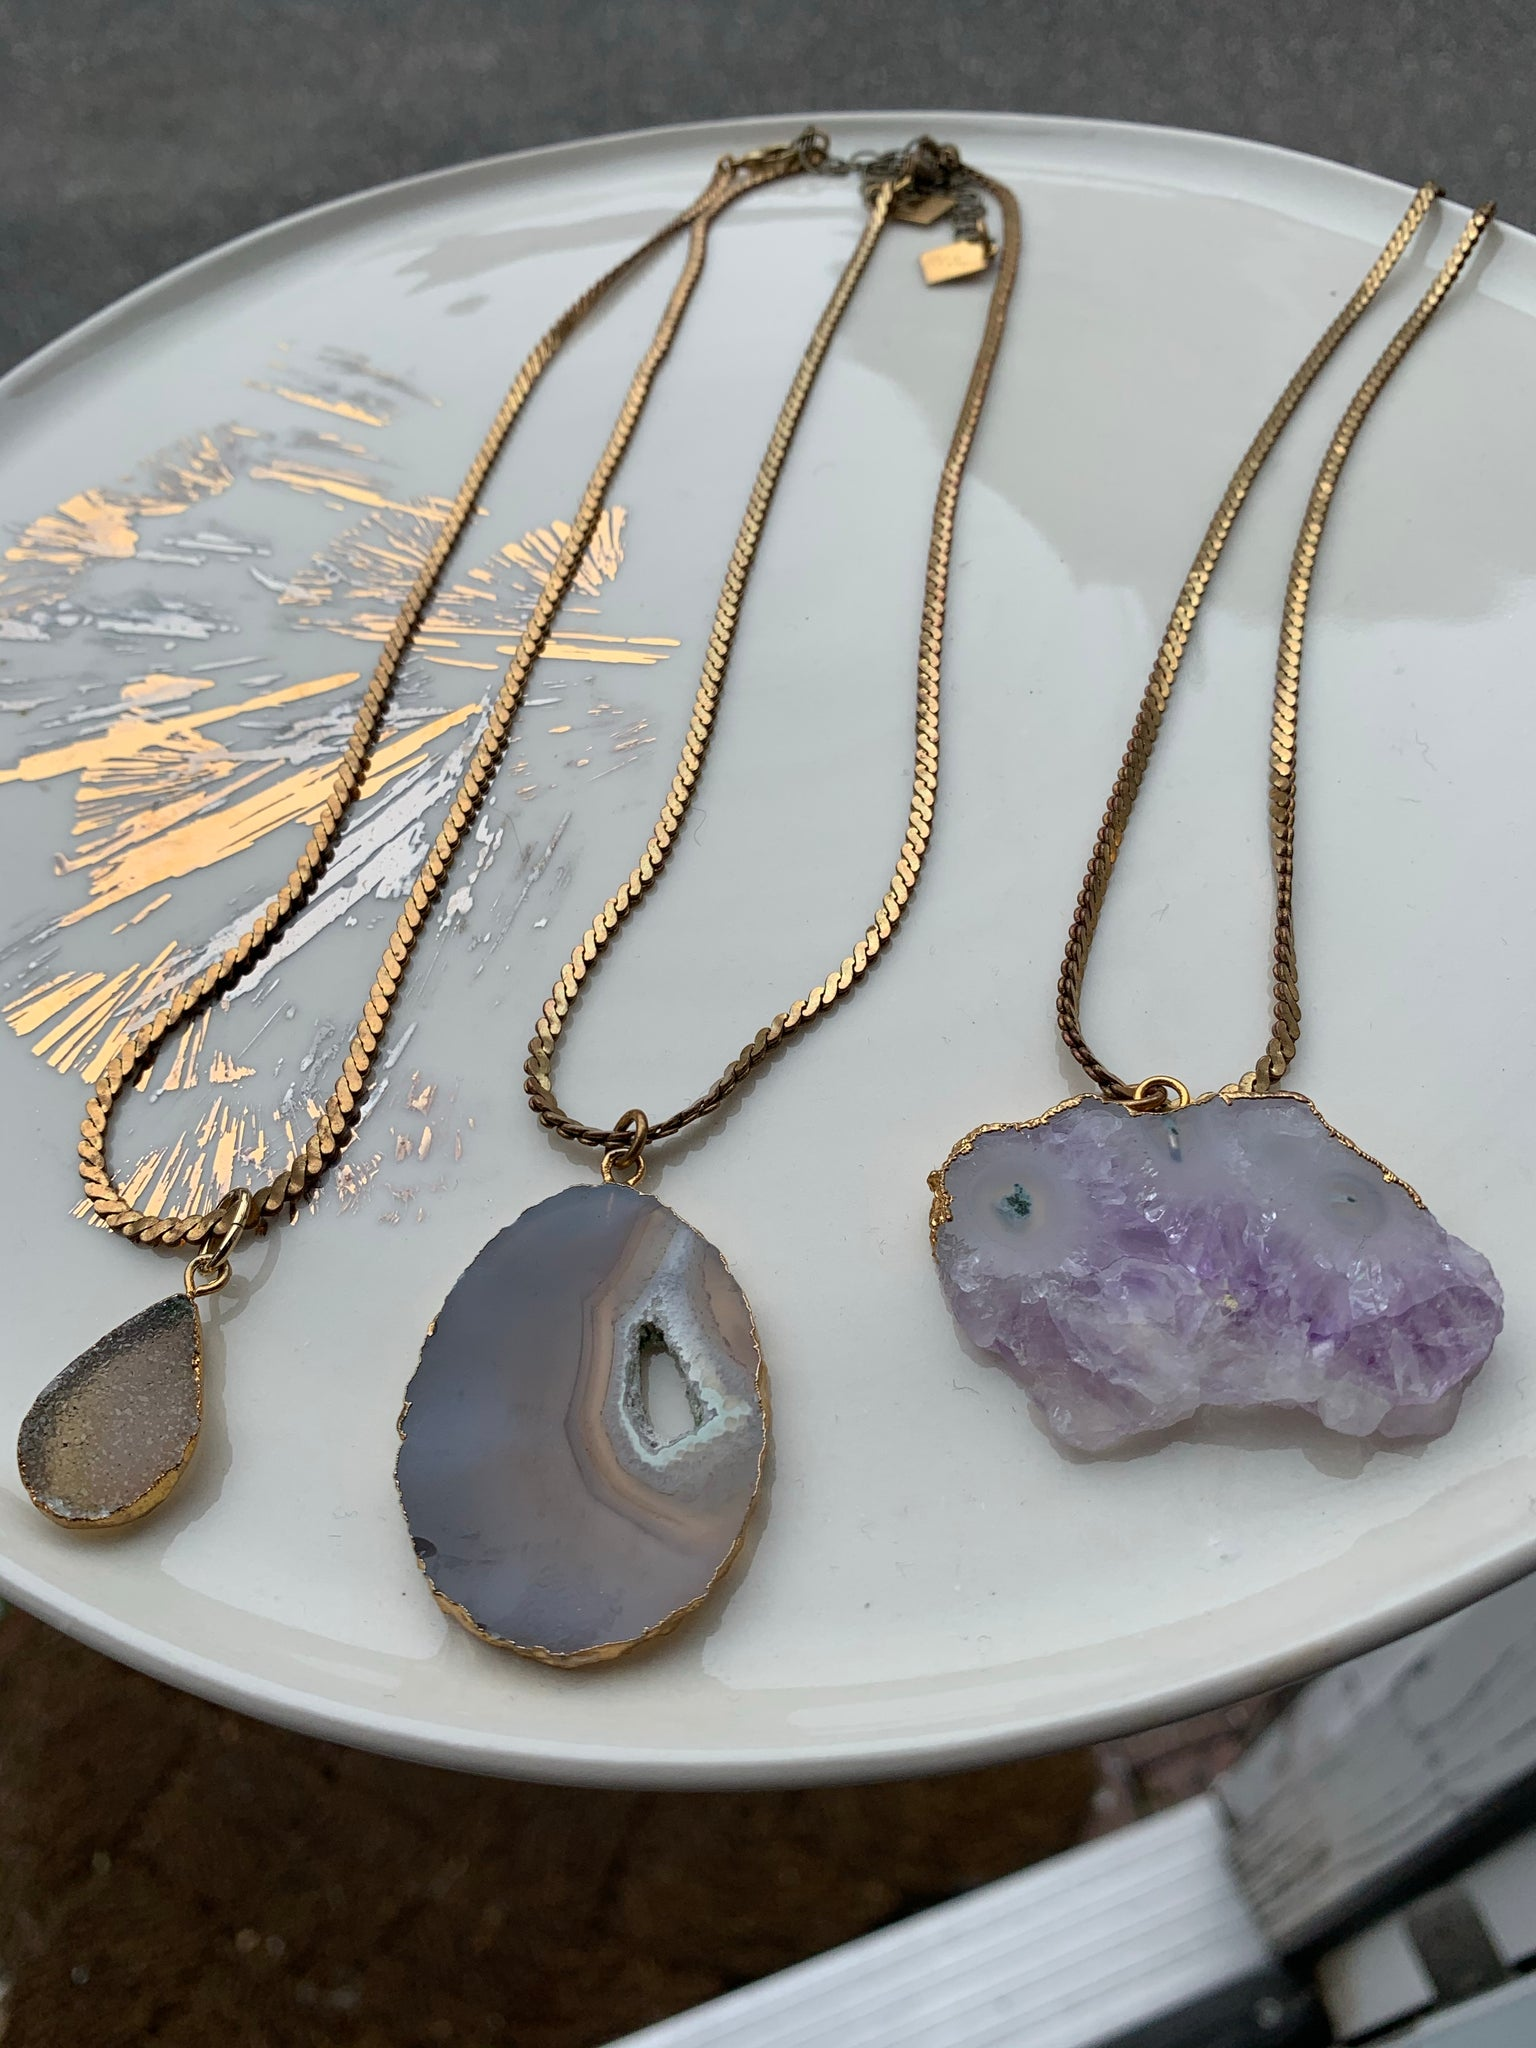 Stone Cooper Necklaces - Natural stone with repurposed chain